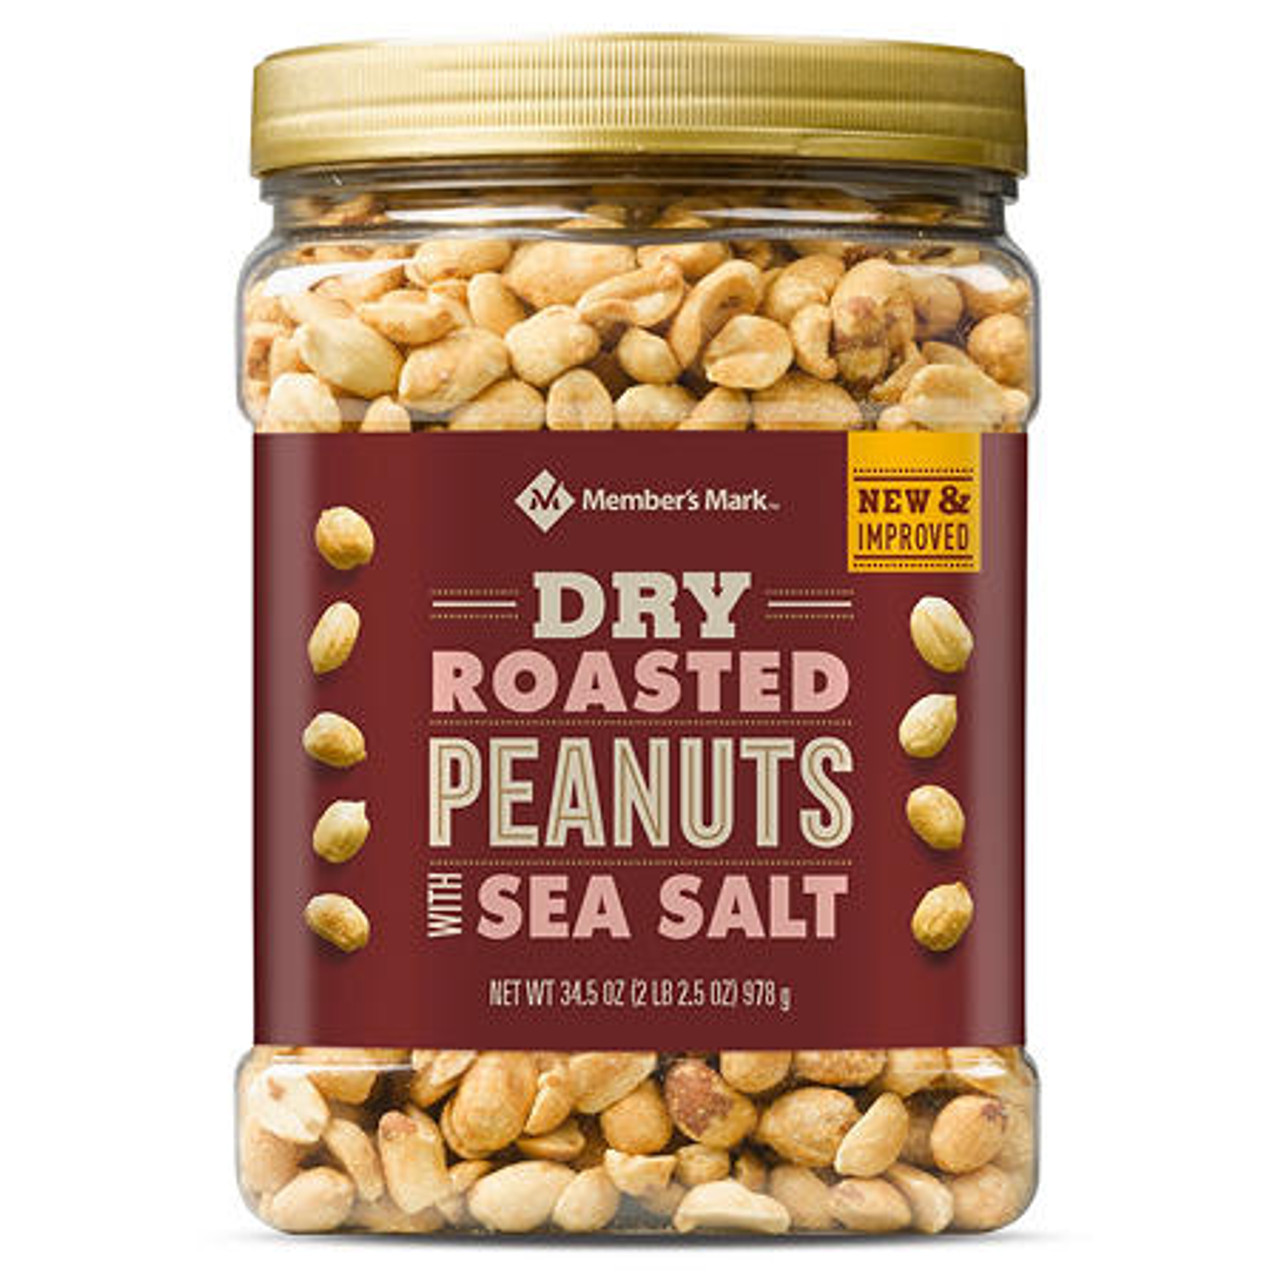 Member's Mark Dry Roasted Peanuts with Sea Salt (34.5 oz.) - *In Store